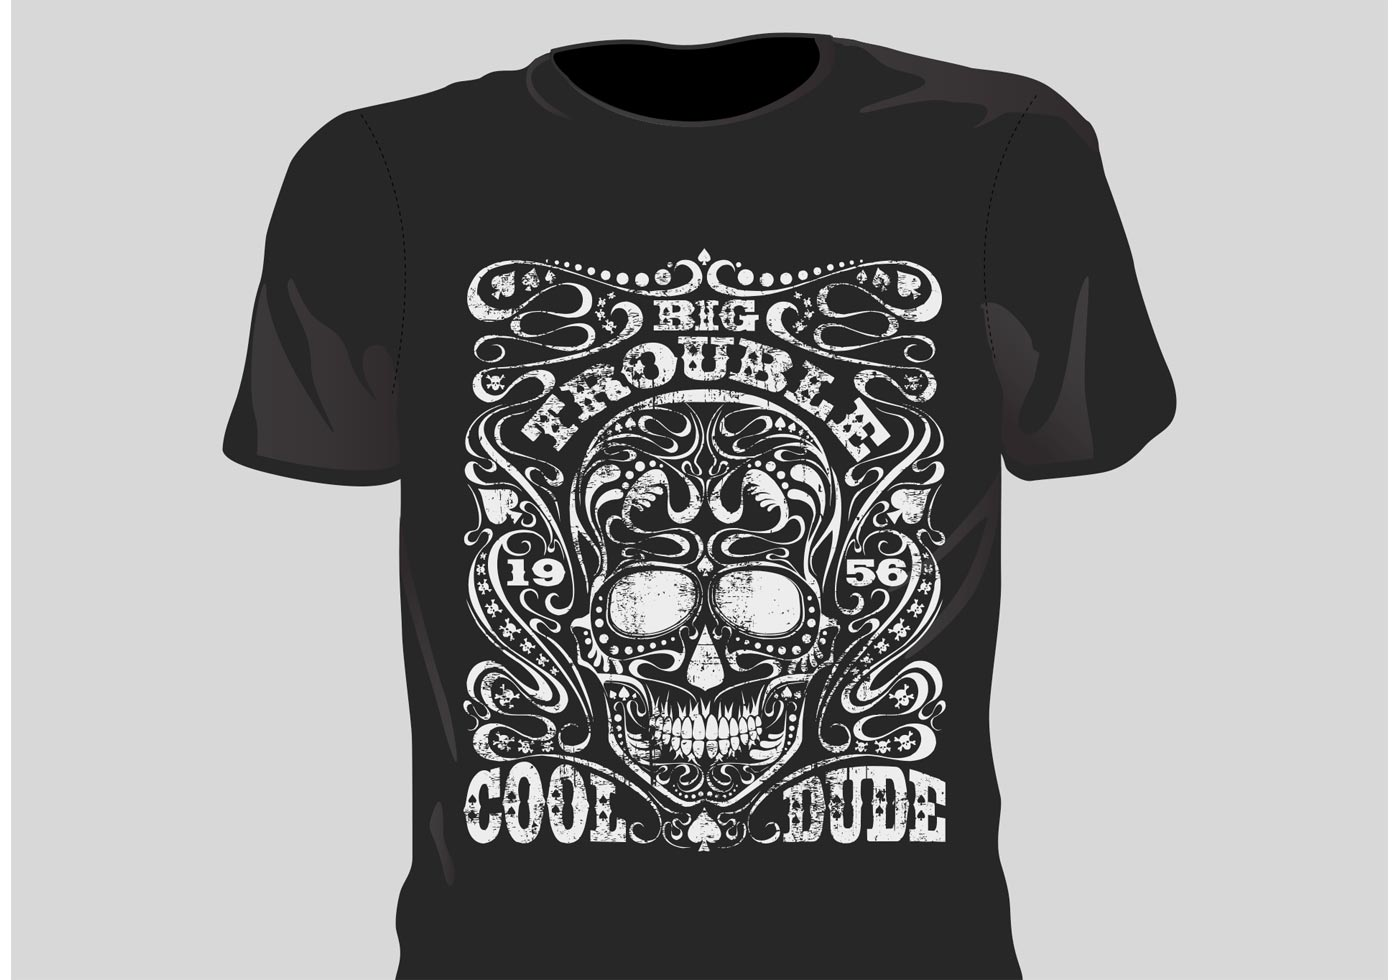 Free Vector Grunge T Shirt Design Download Free Vector